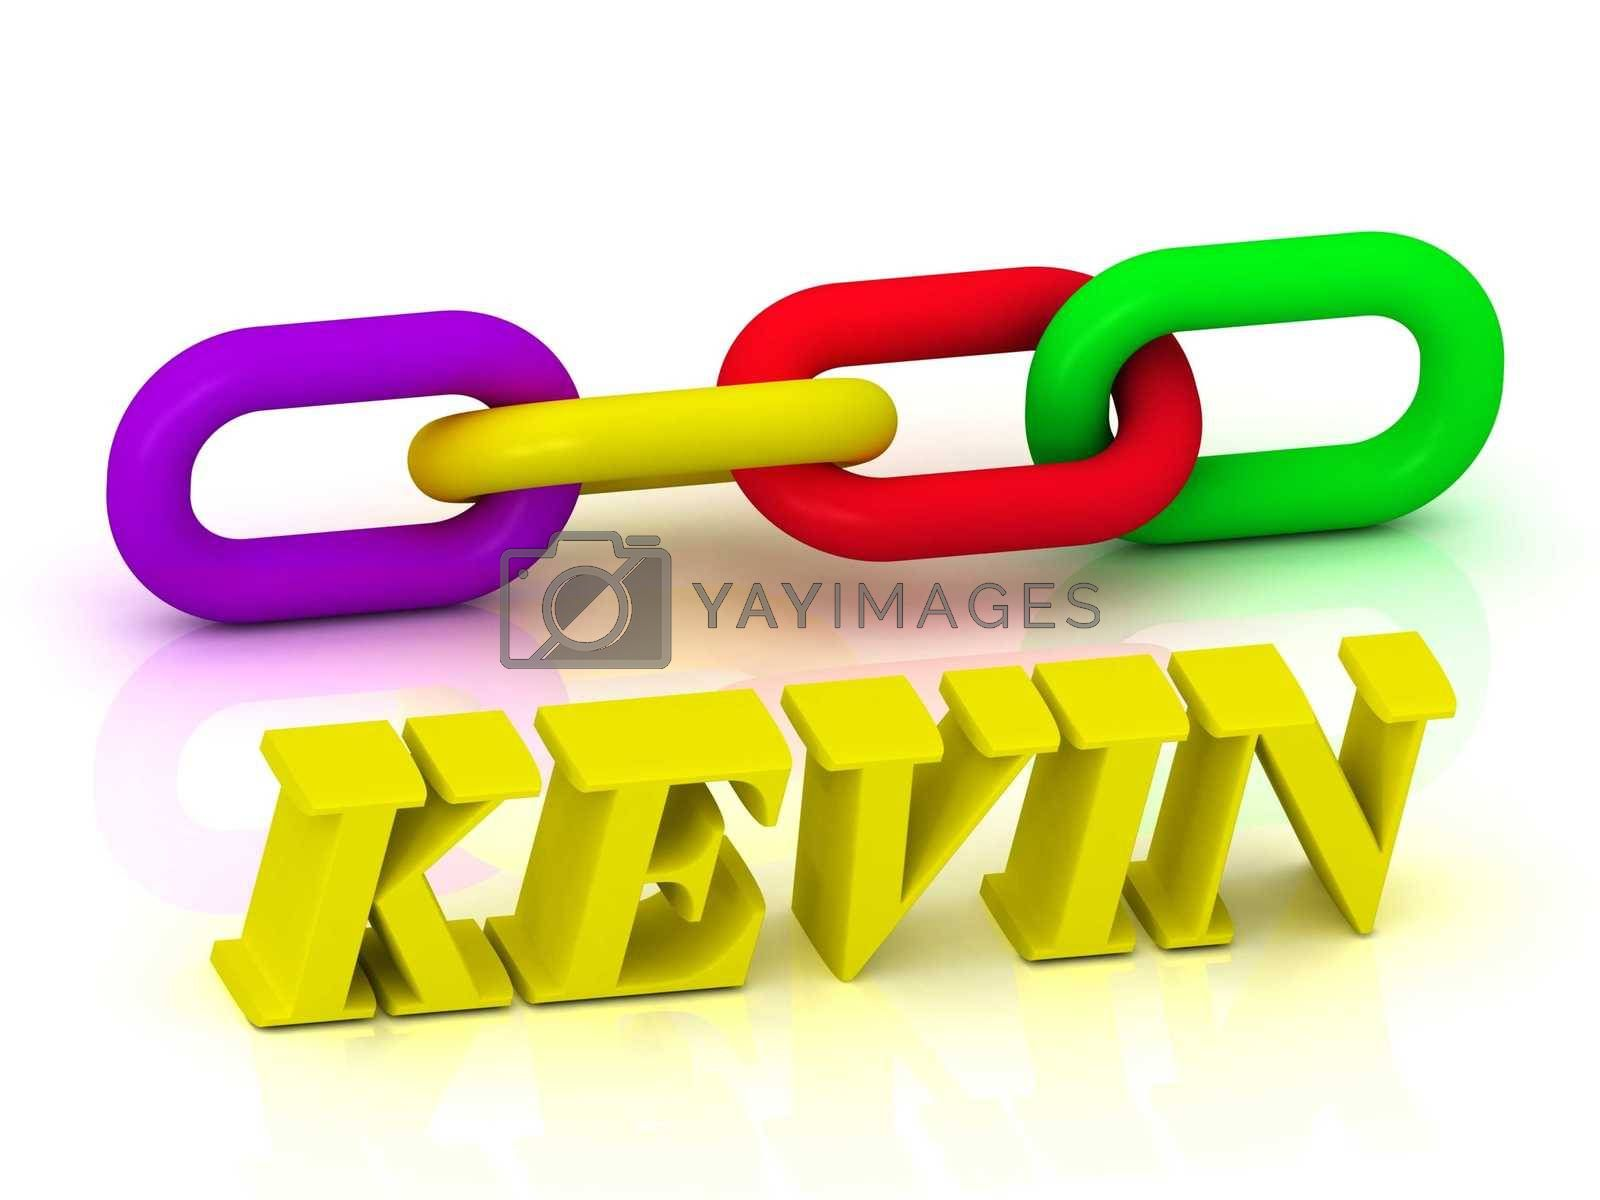 KEVIN- Name and Family of bright yellow letters and chain of green, yellow, red section on white background